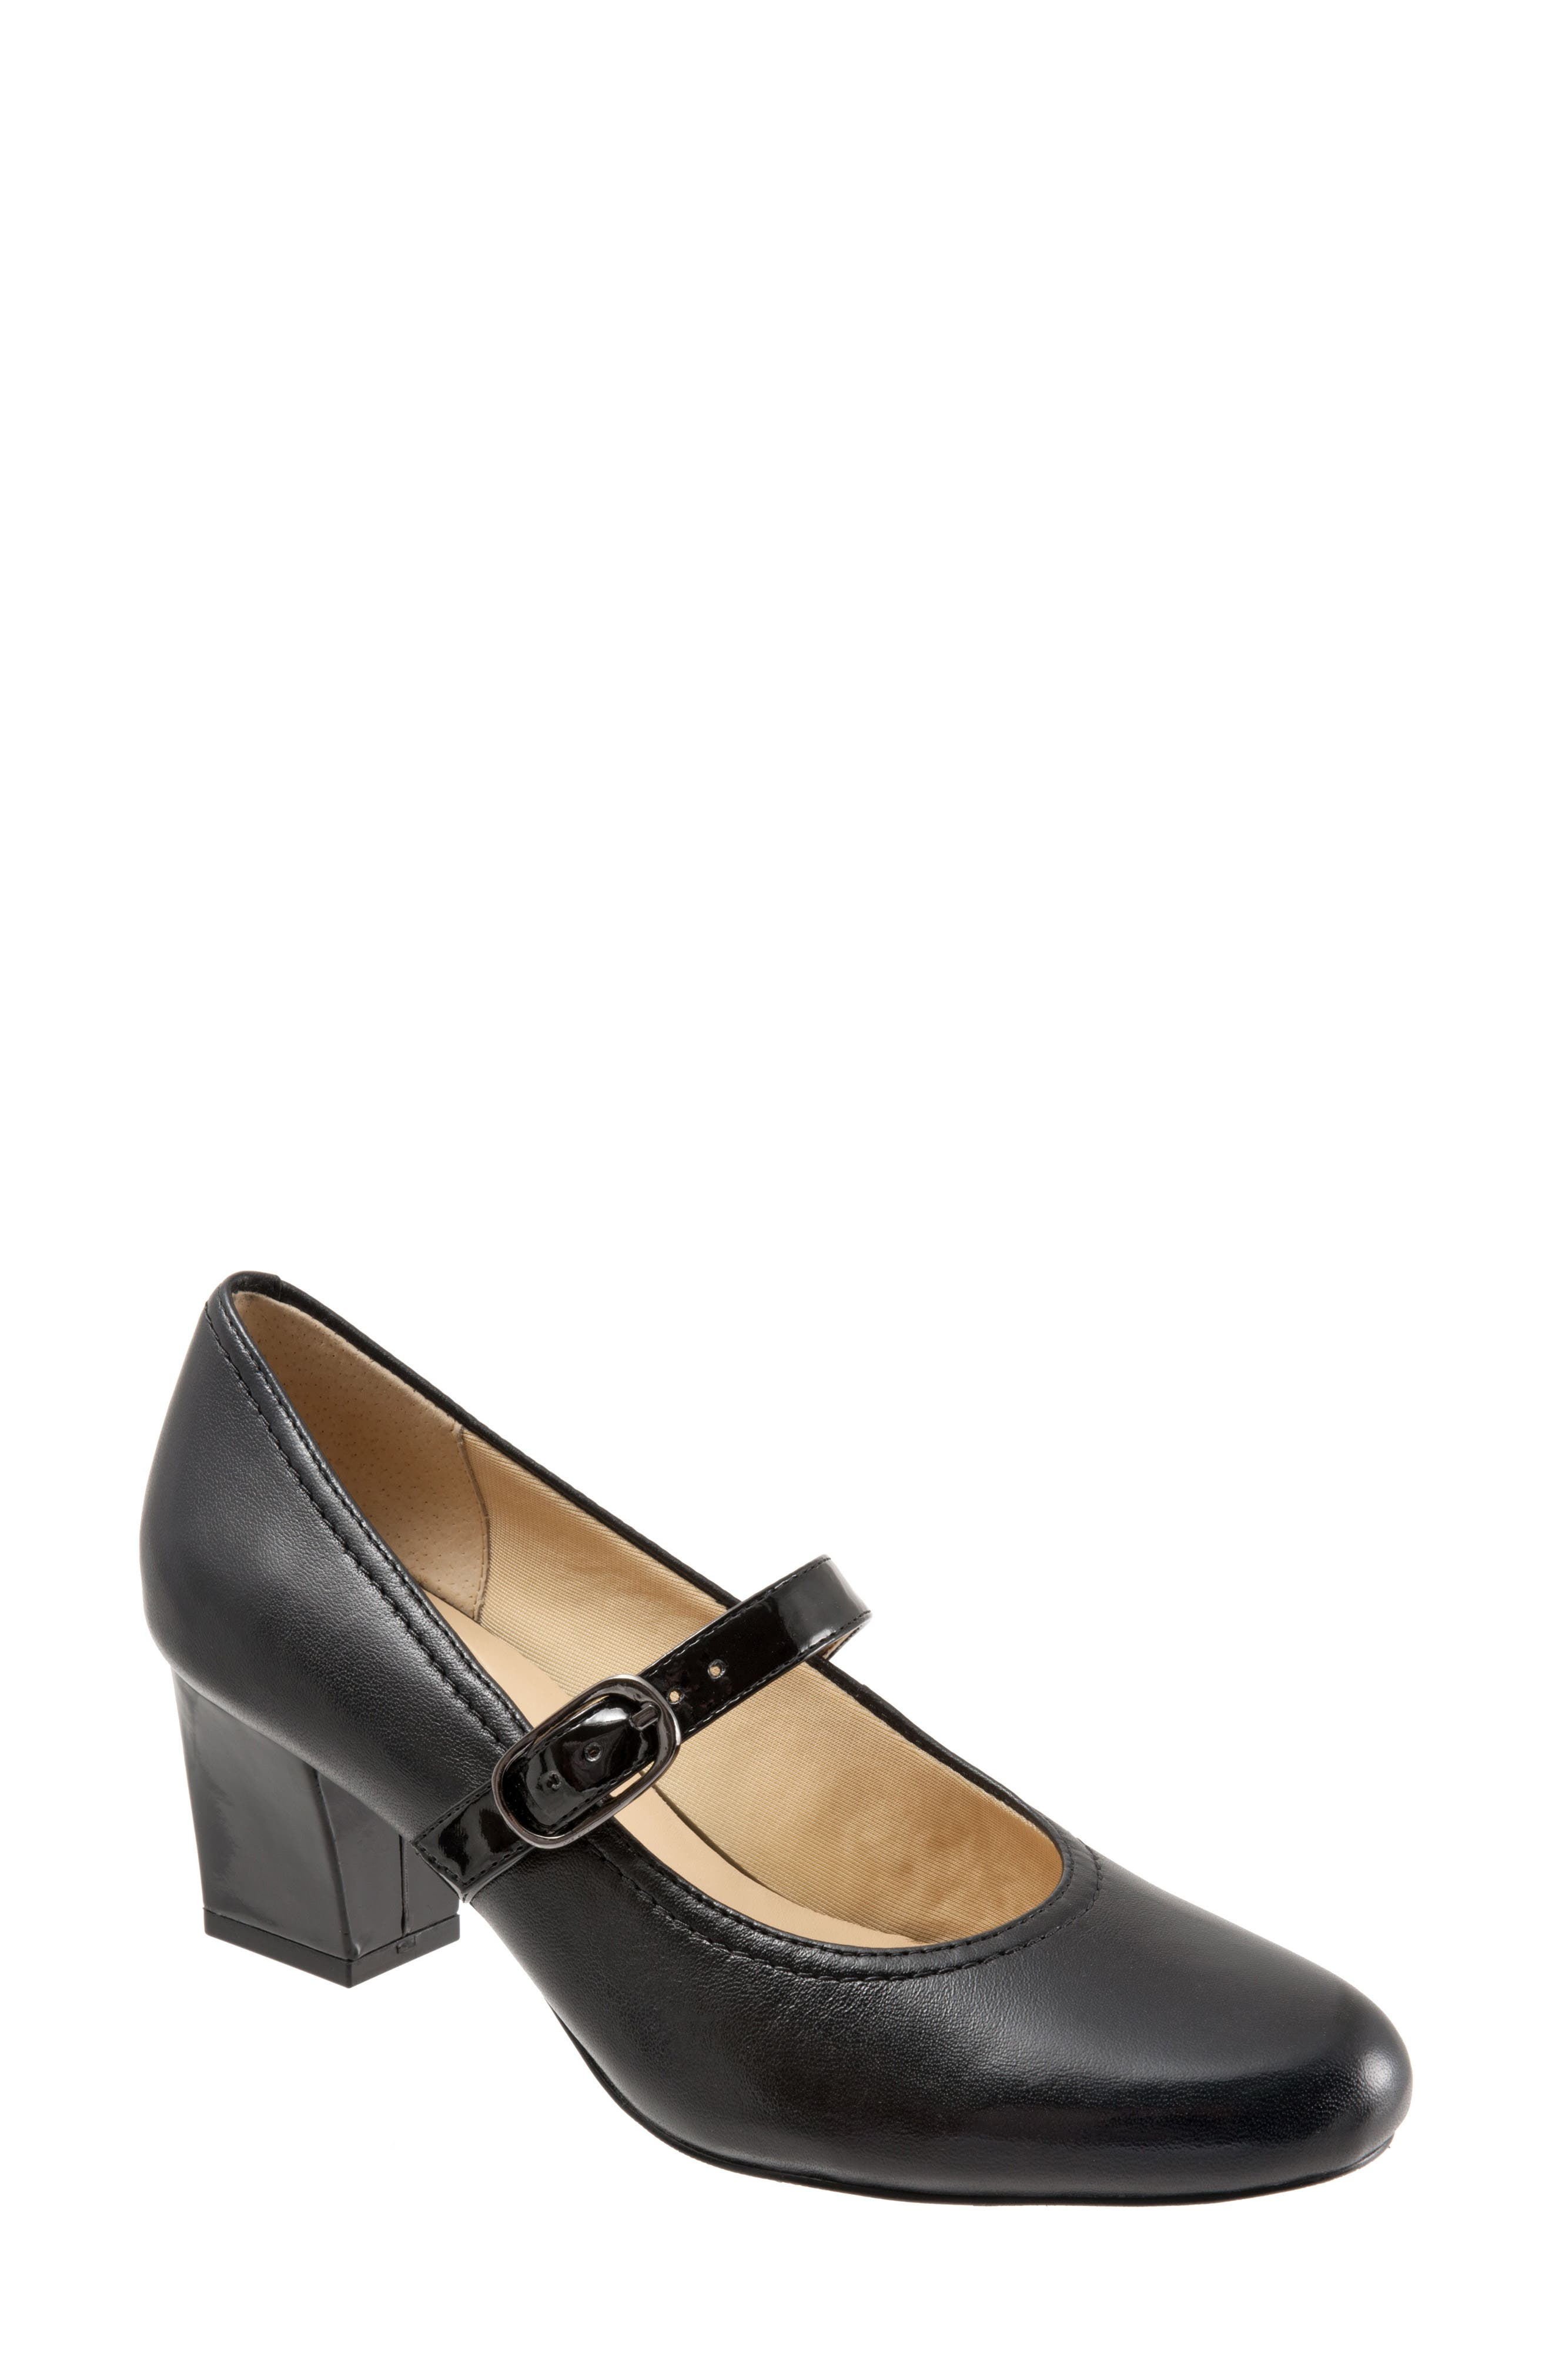 TROTTERS, 'Candice' Mary Jane Pump, Alternate thumbnail 5, color, BLACK LEATHER